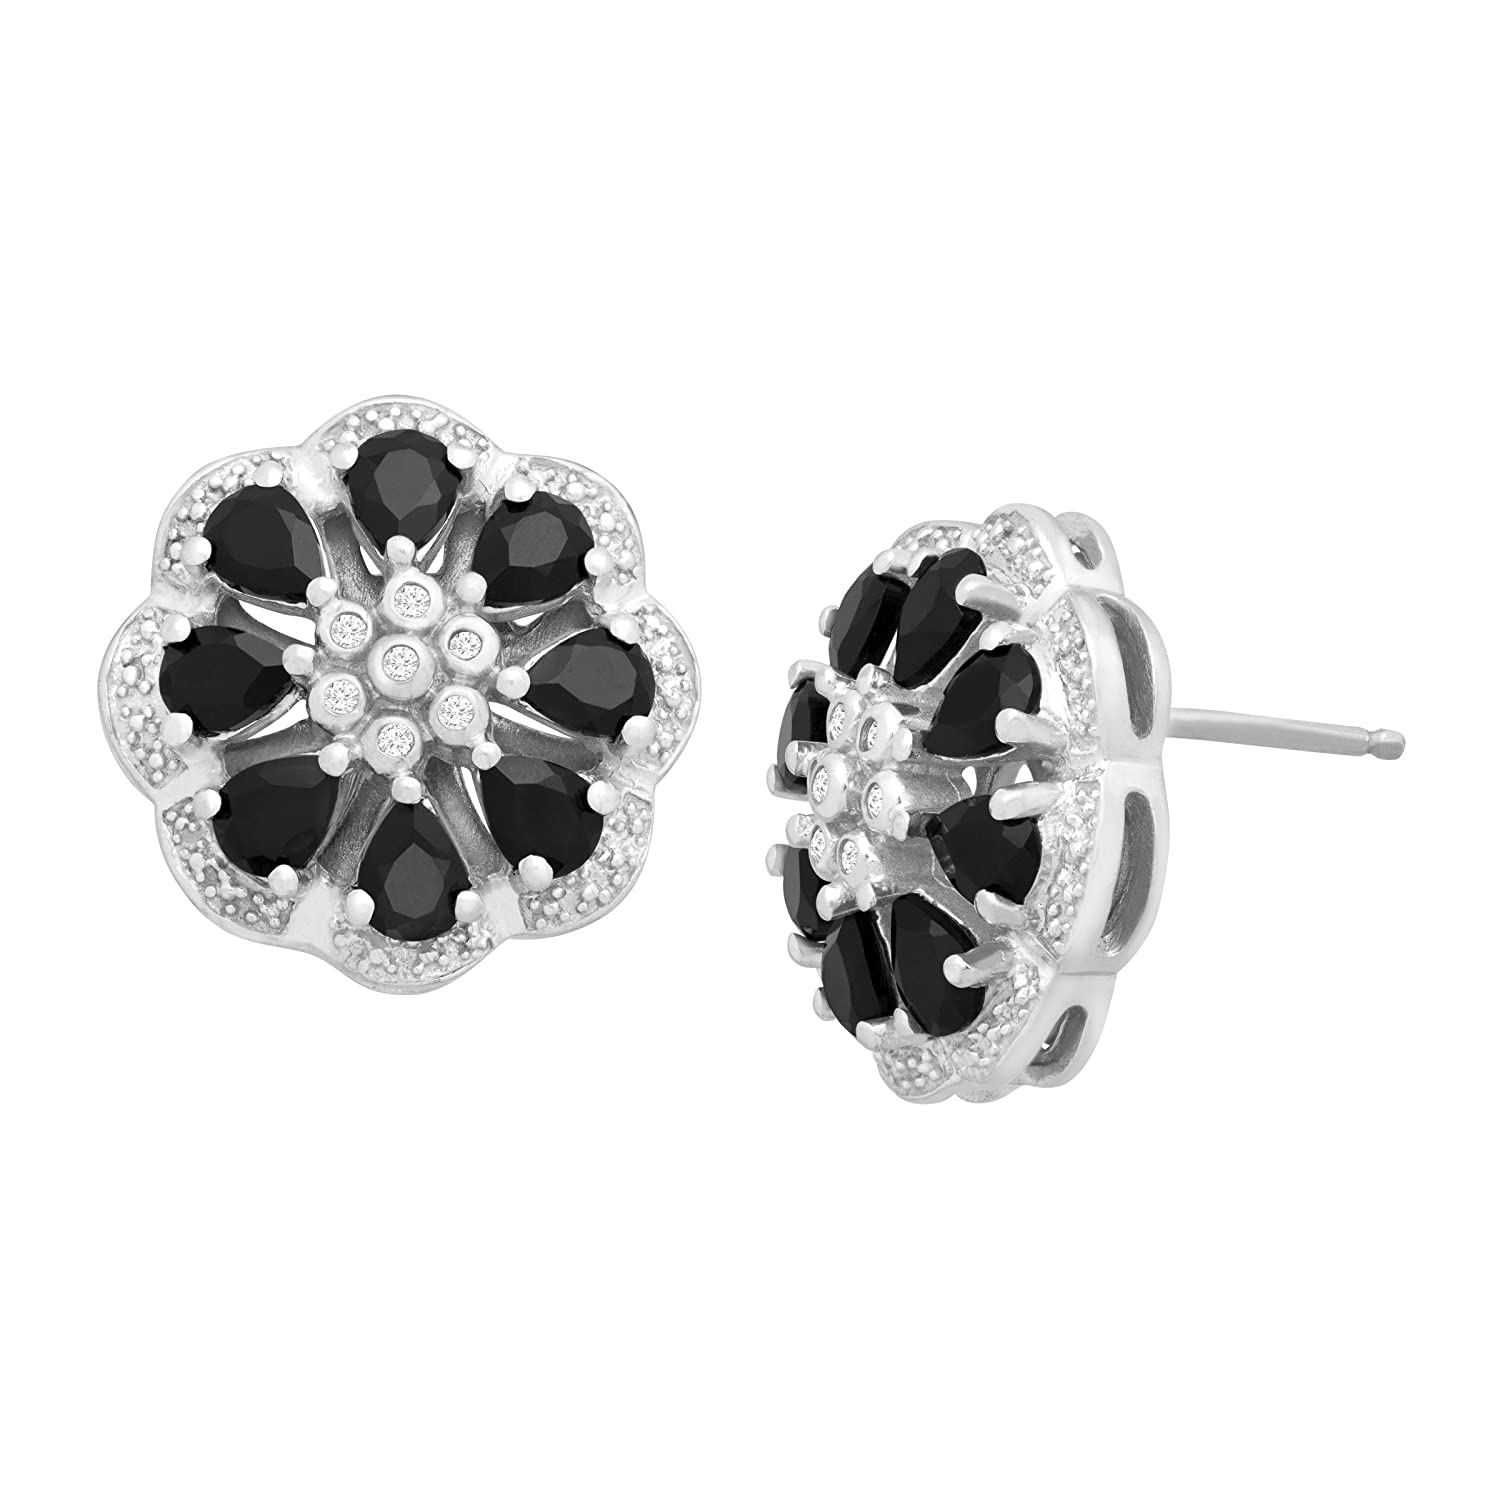 1 5/8 ct Natural Onyx Flower Stud Earrings with Diamonds in Sterling Silver